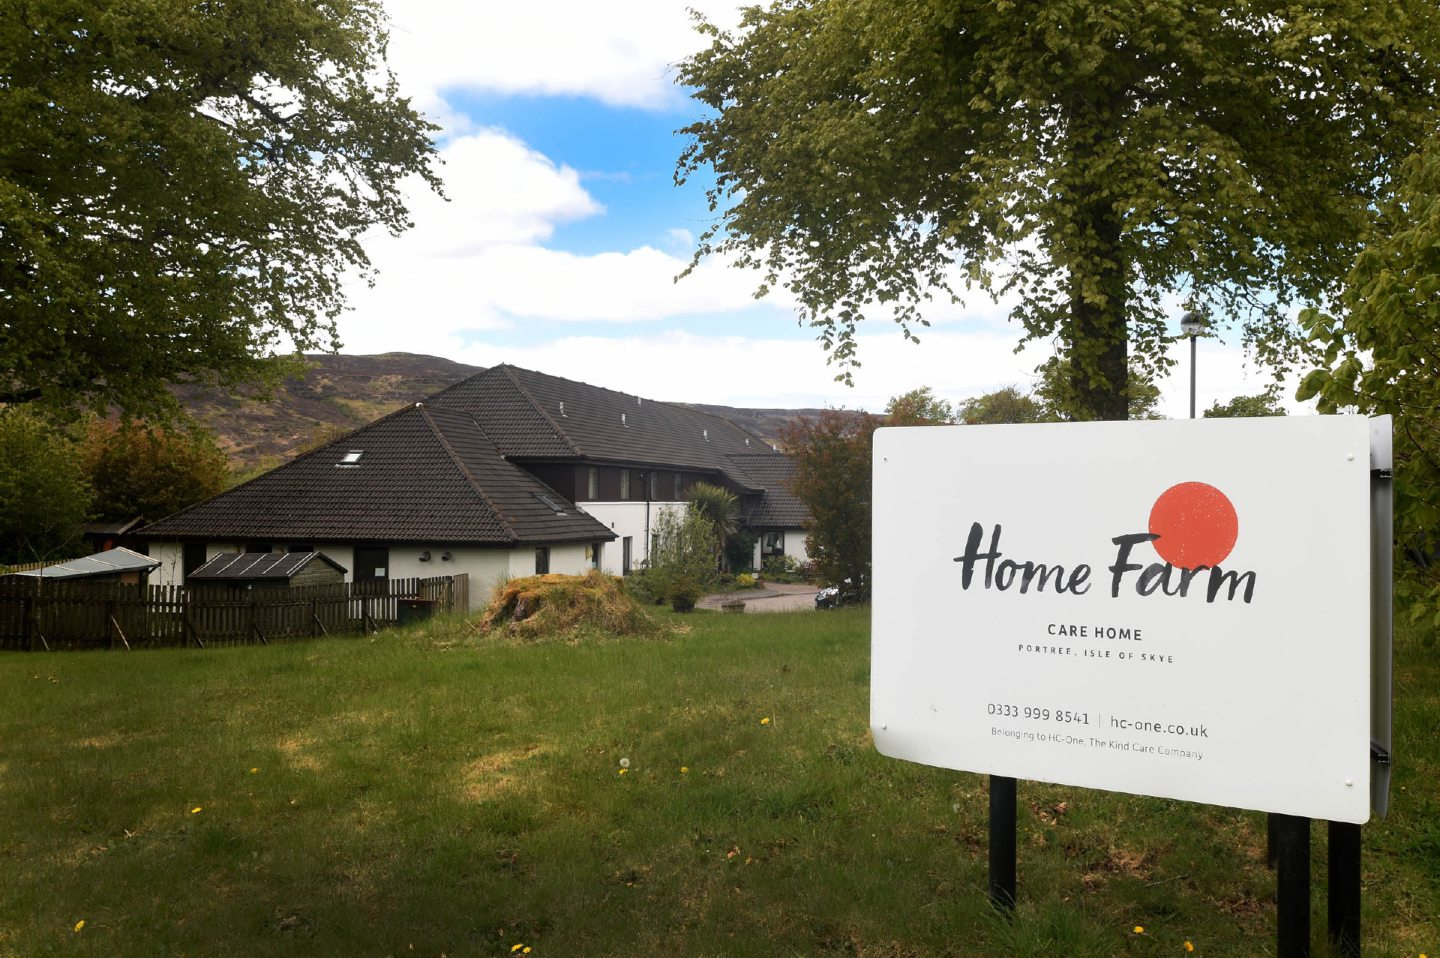 Home Farm care home, Portree, Skye.